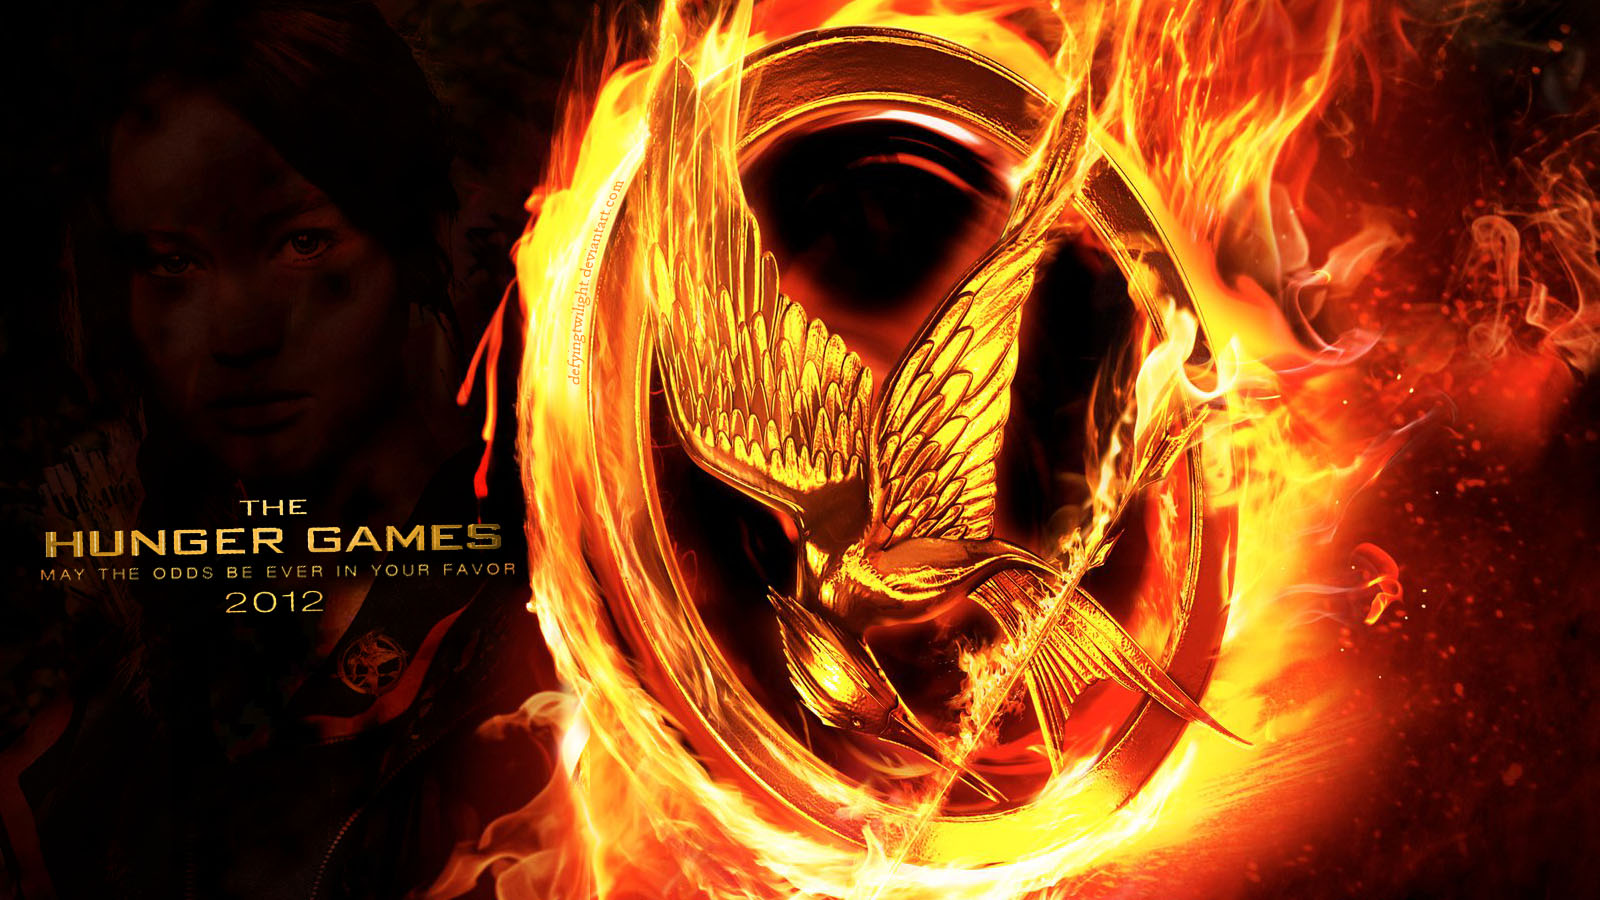 'The Hunger Games' Movie Poster achtergronden